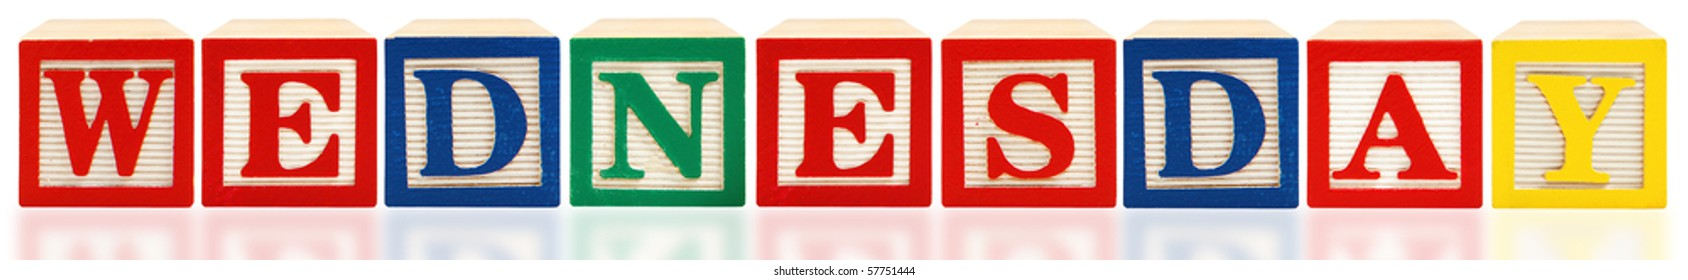 Colorful alphabet blocks spelling out Wednesday on white